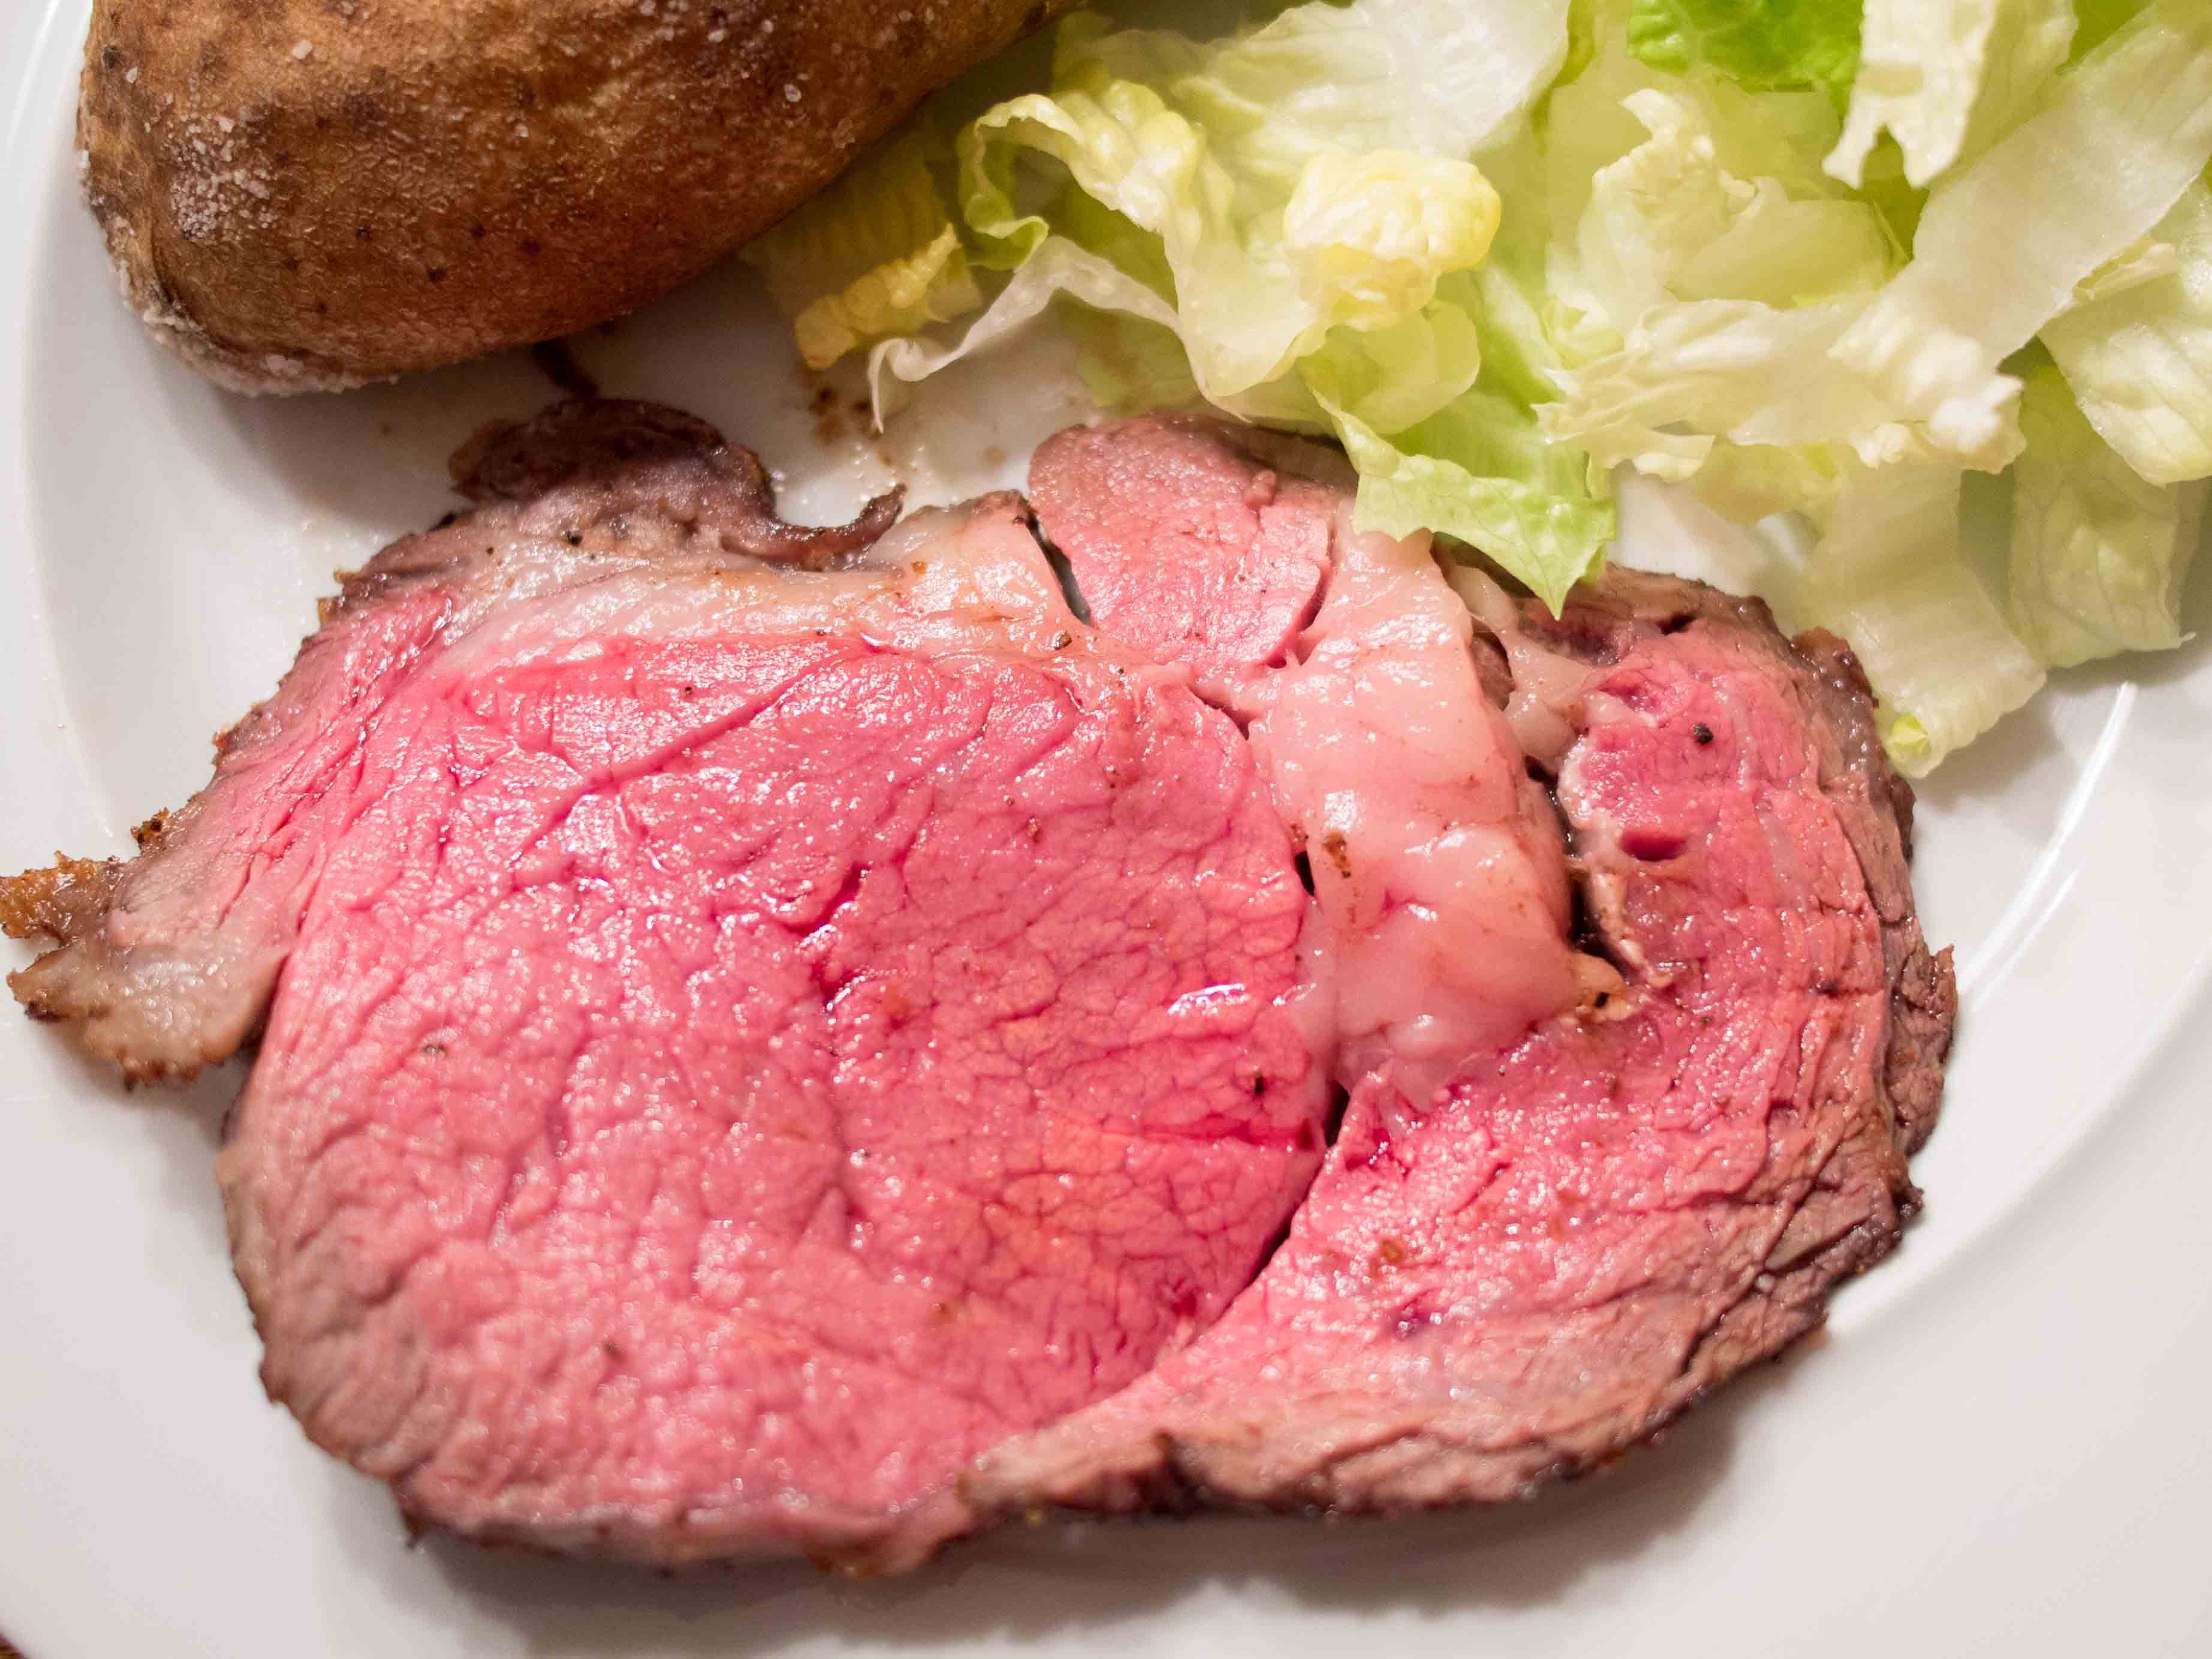 Prime Rib is on the menu for Yew Year's Eve at our house and that ...